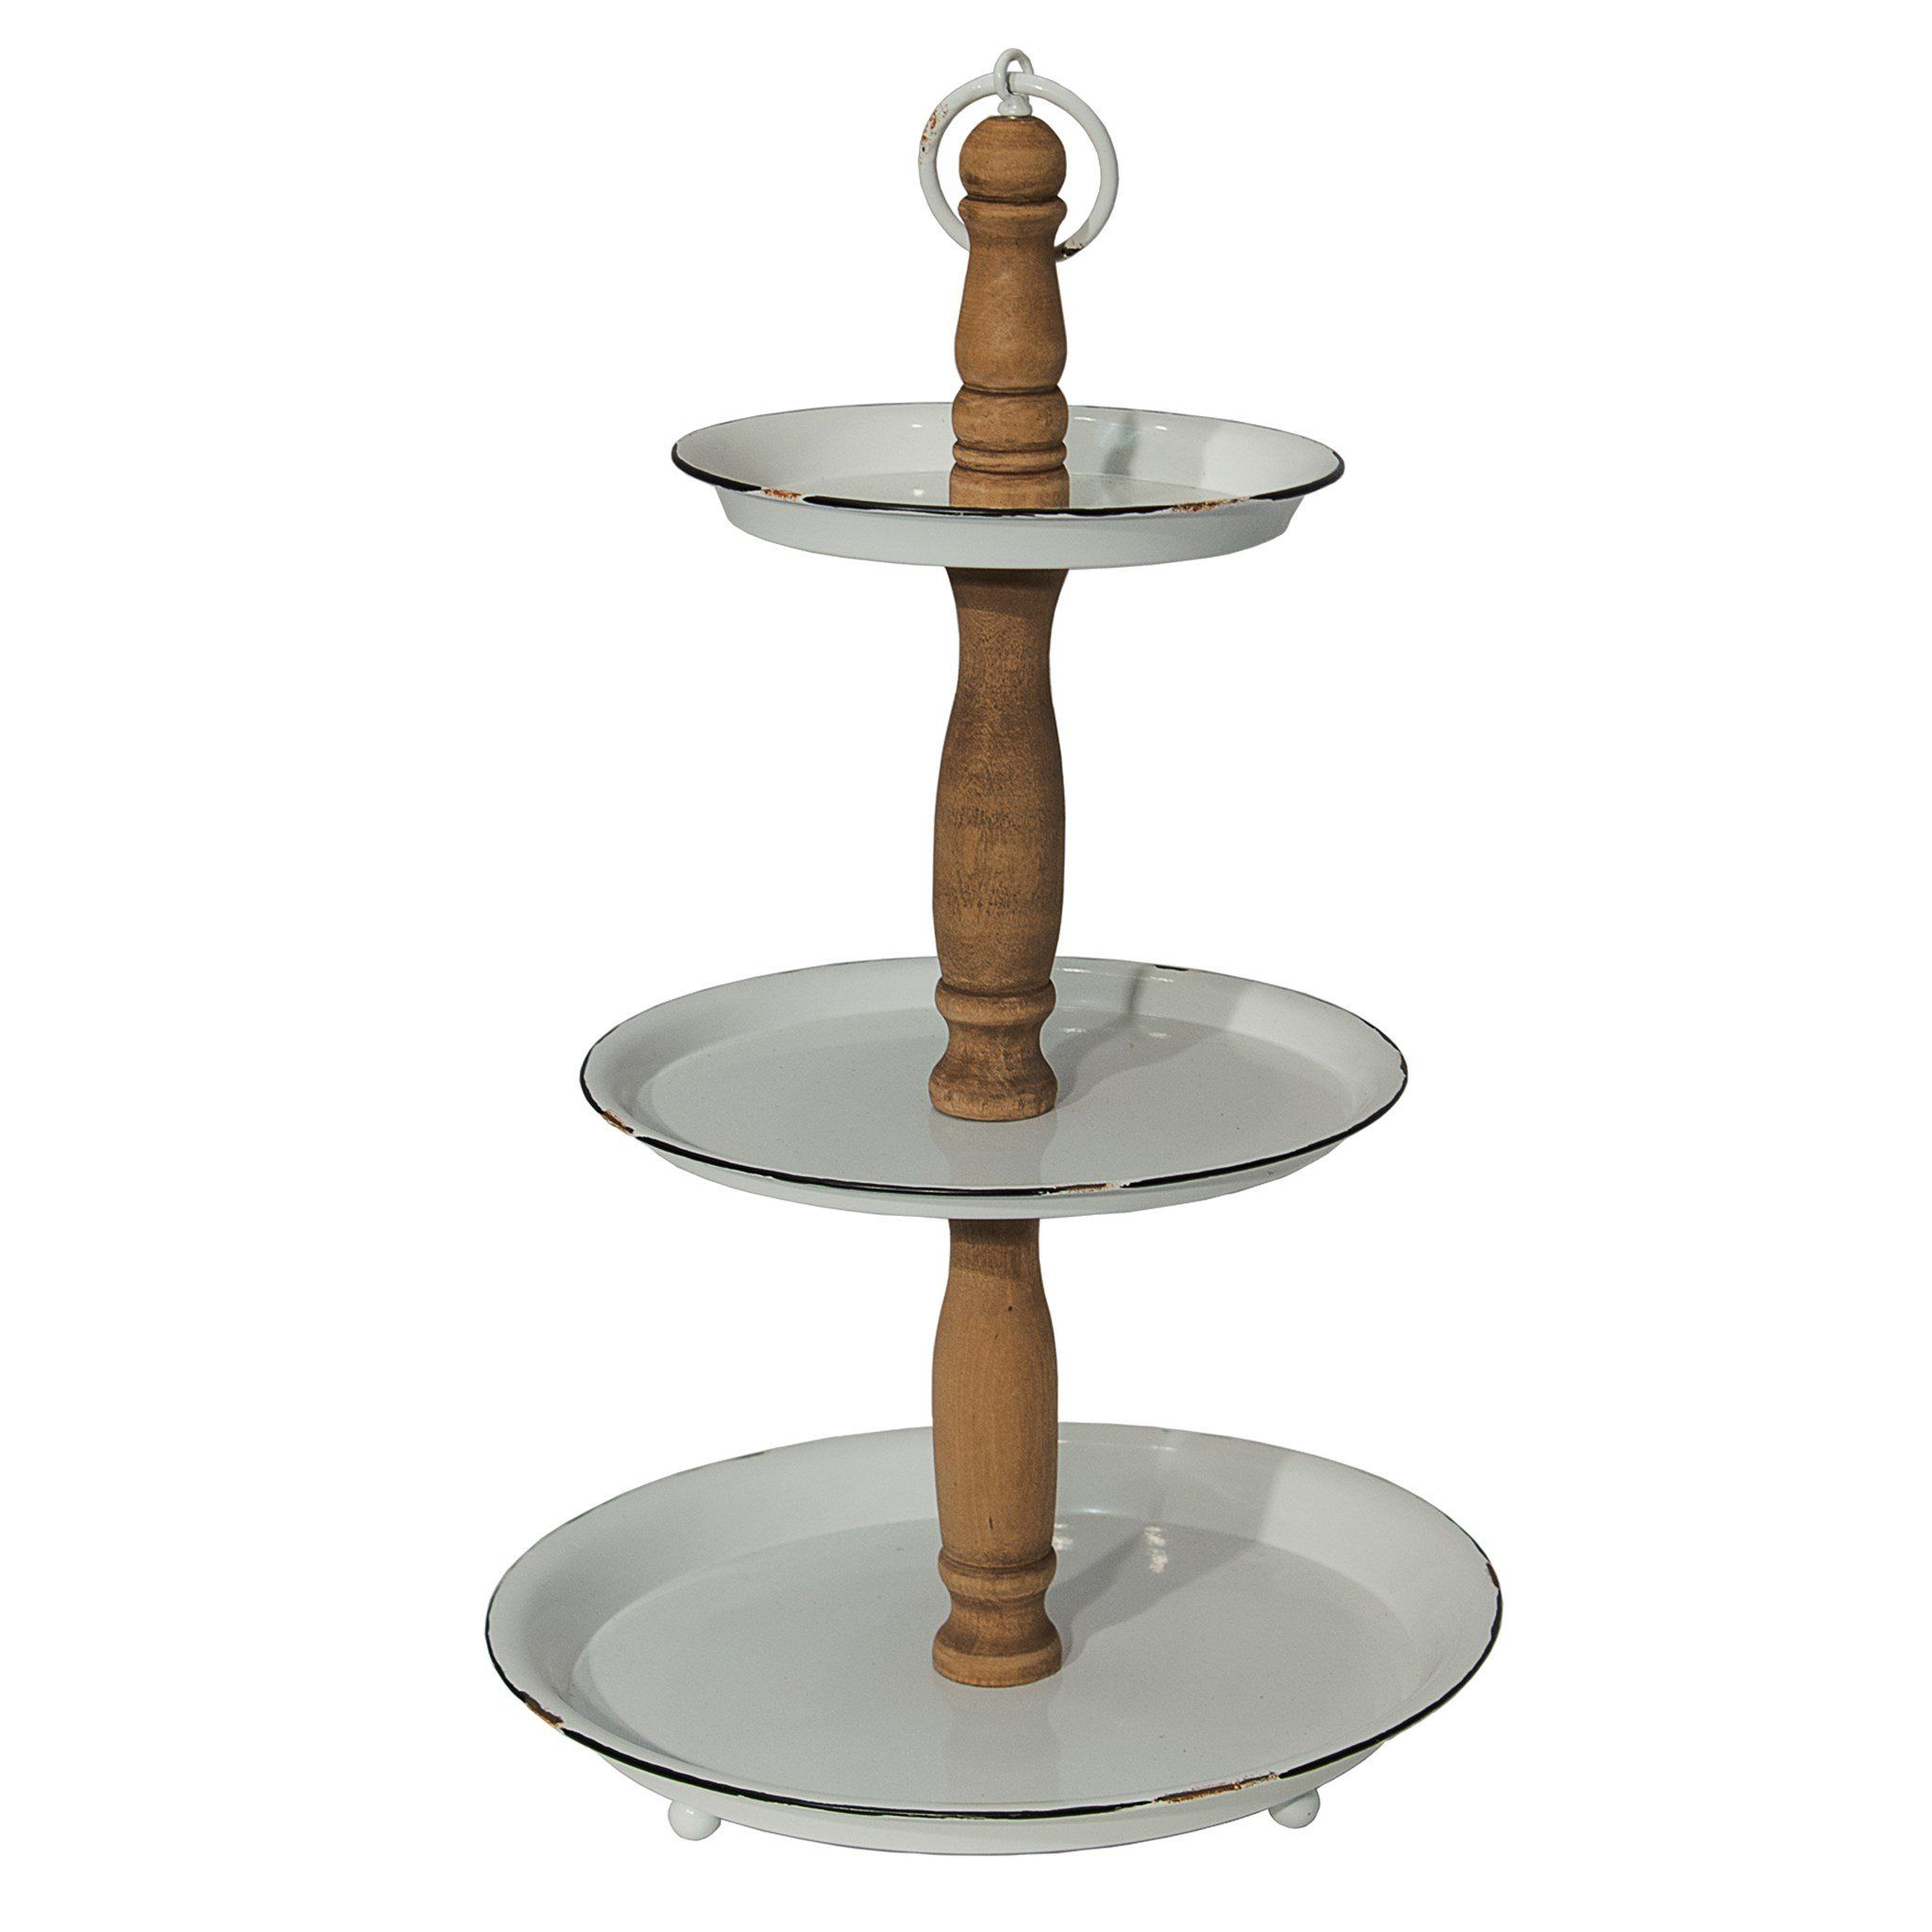 This Vintage Style Enamel And Wood 3 Tier Tray Represents The Ideal Marriage Of Wood And Metal The Perfectly Imperfect Tiered Server Tiered Stand Tiered Tray